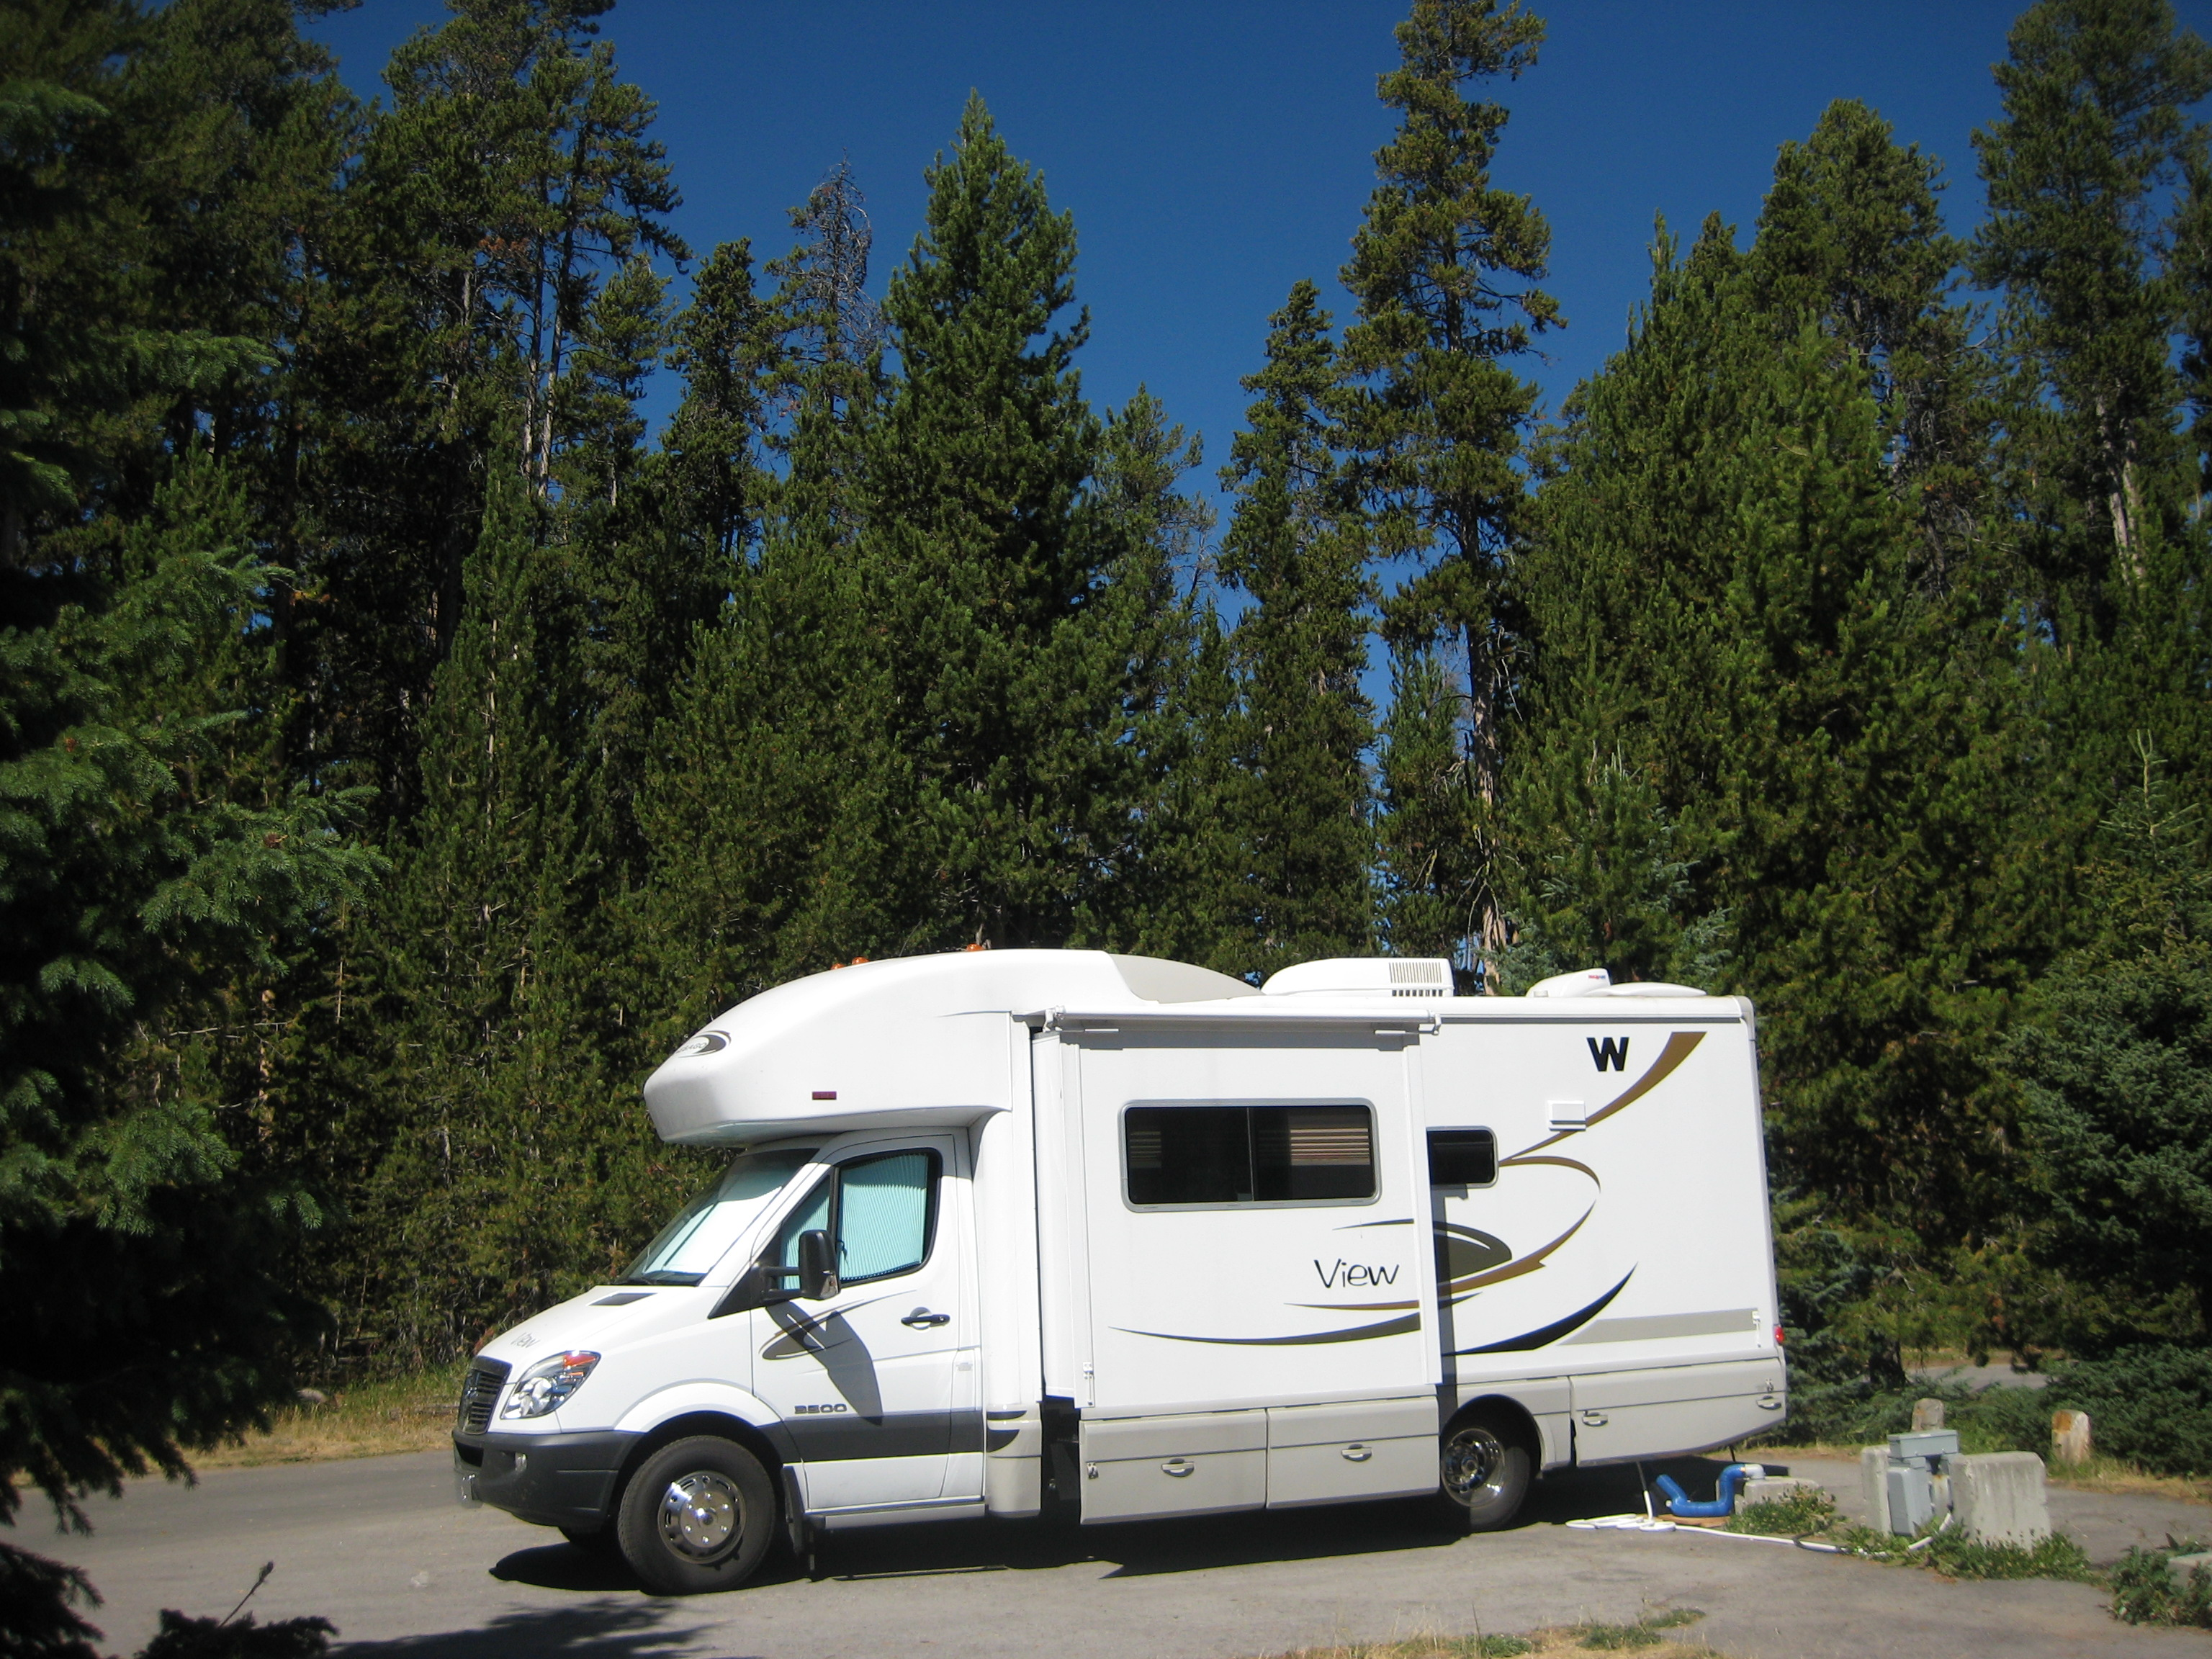 Incredible blue sky in Yellowstone campground